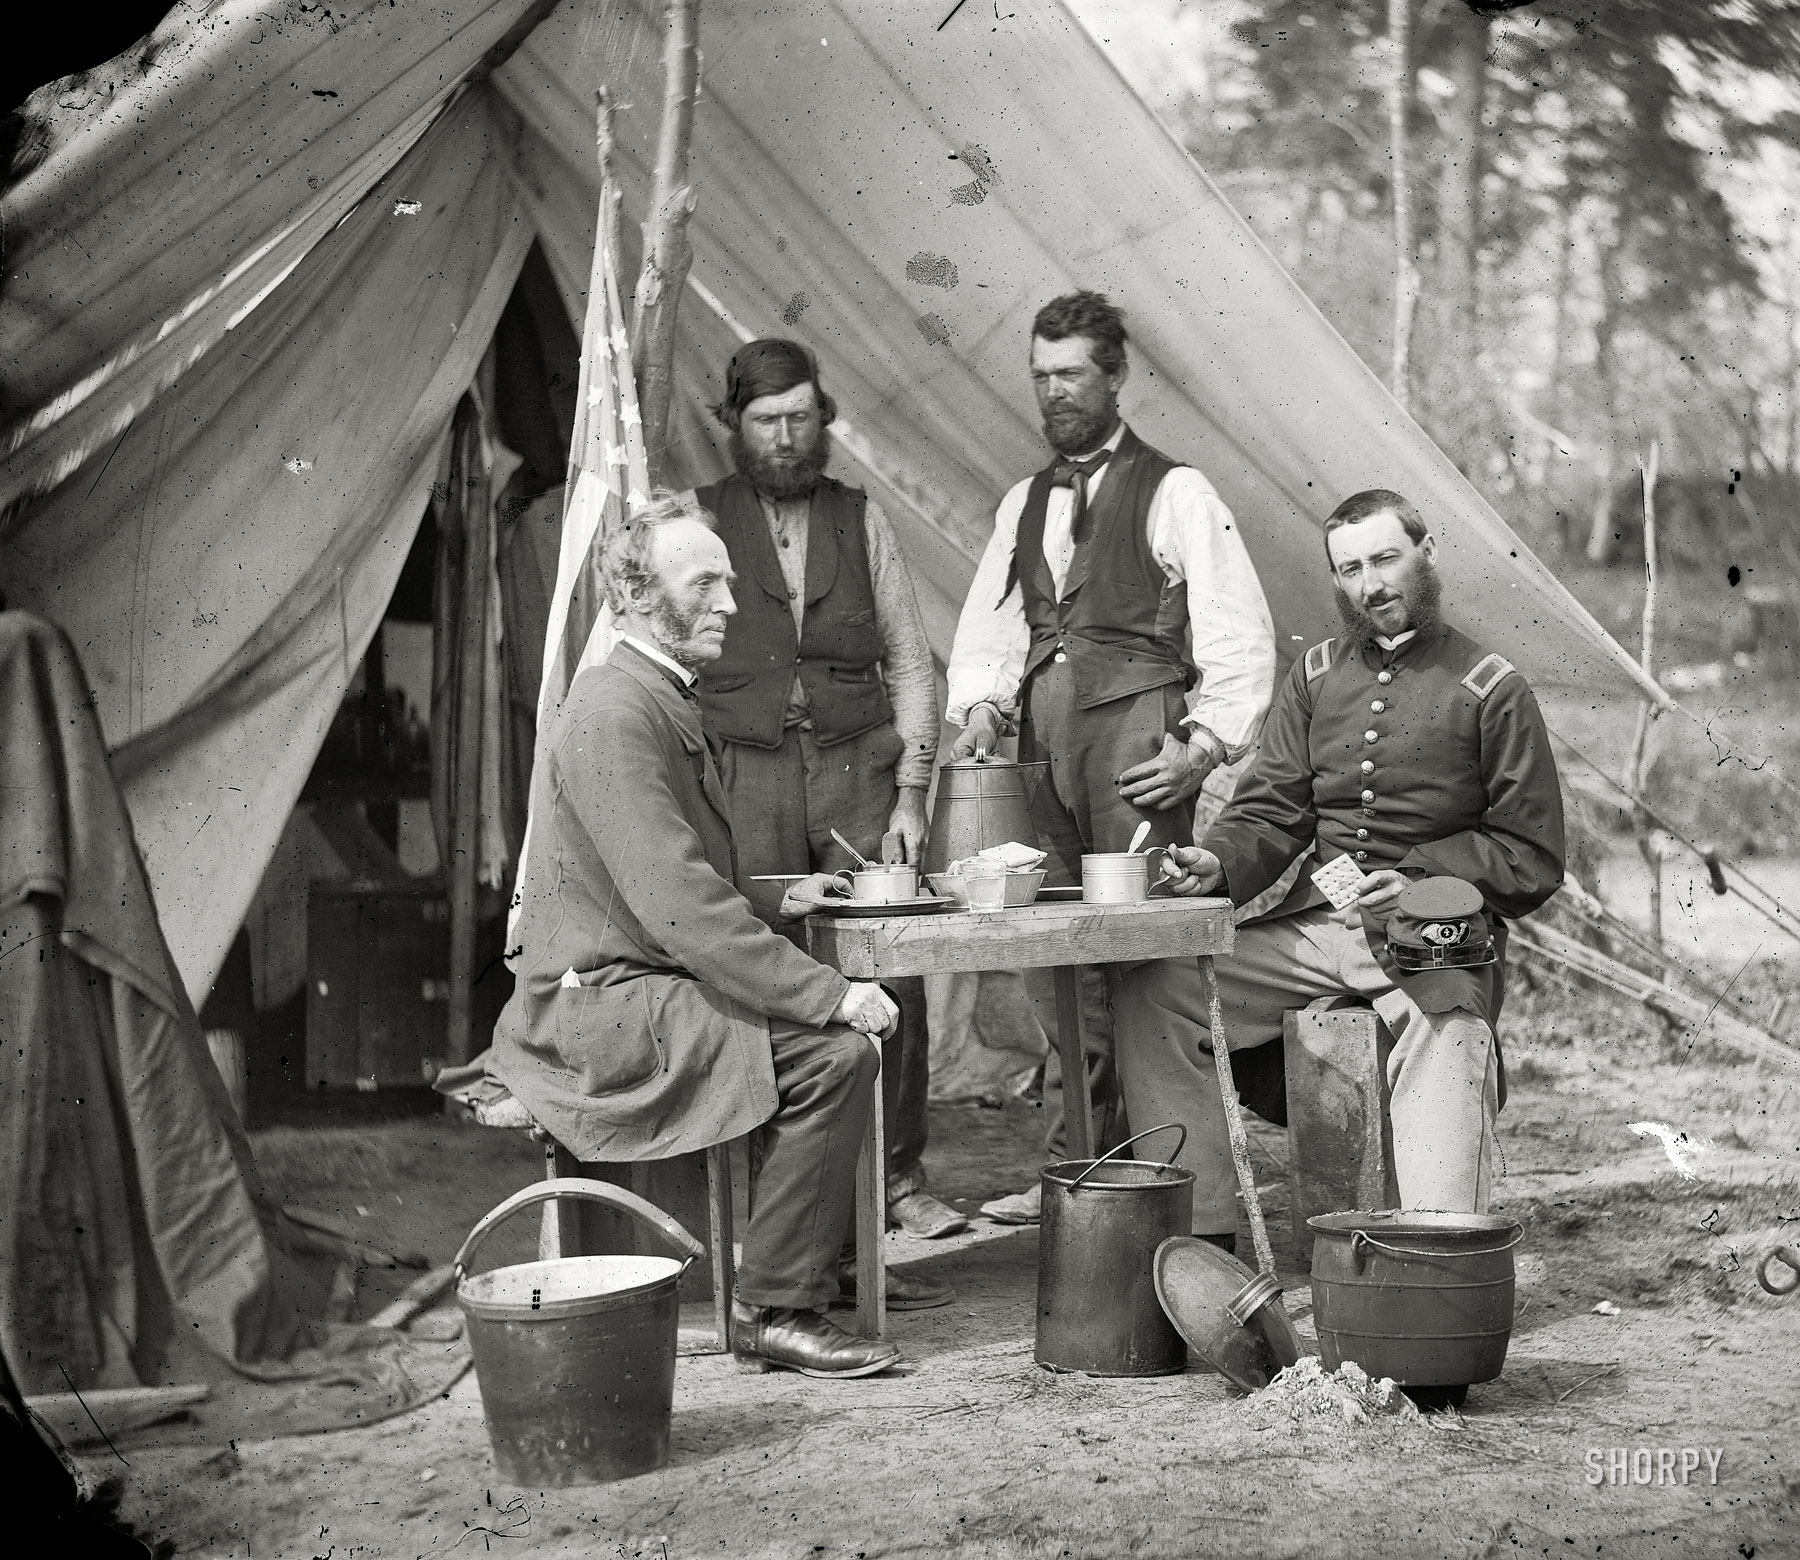 Shorpy Historic Picture Archive :: Coffee Break: 1862 high-resolution photo